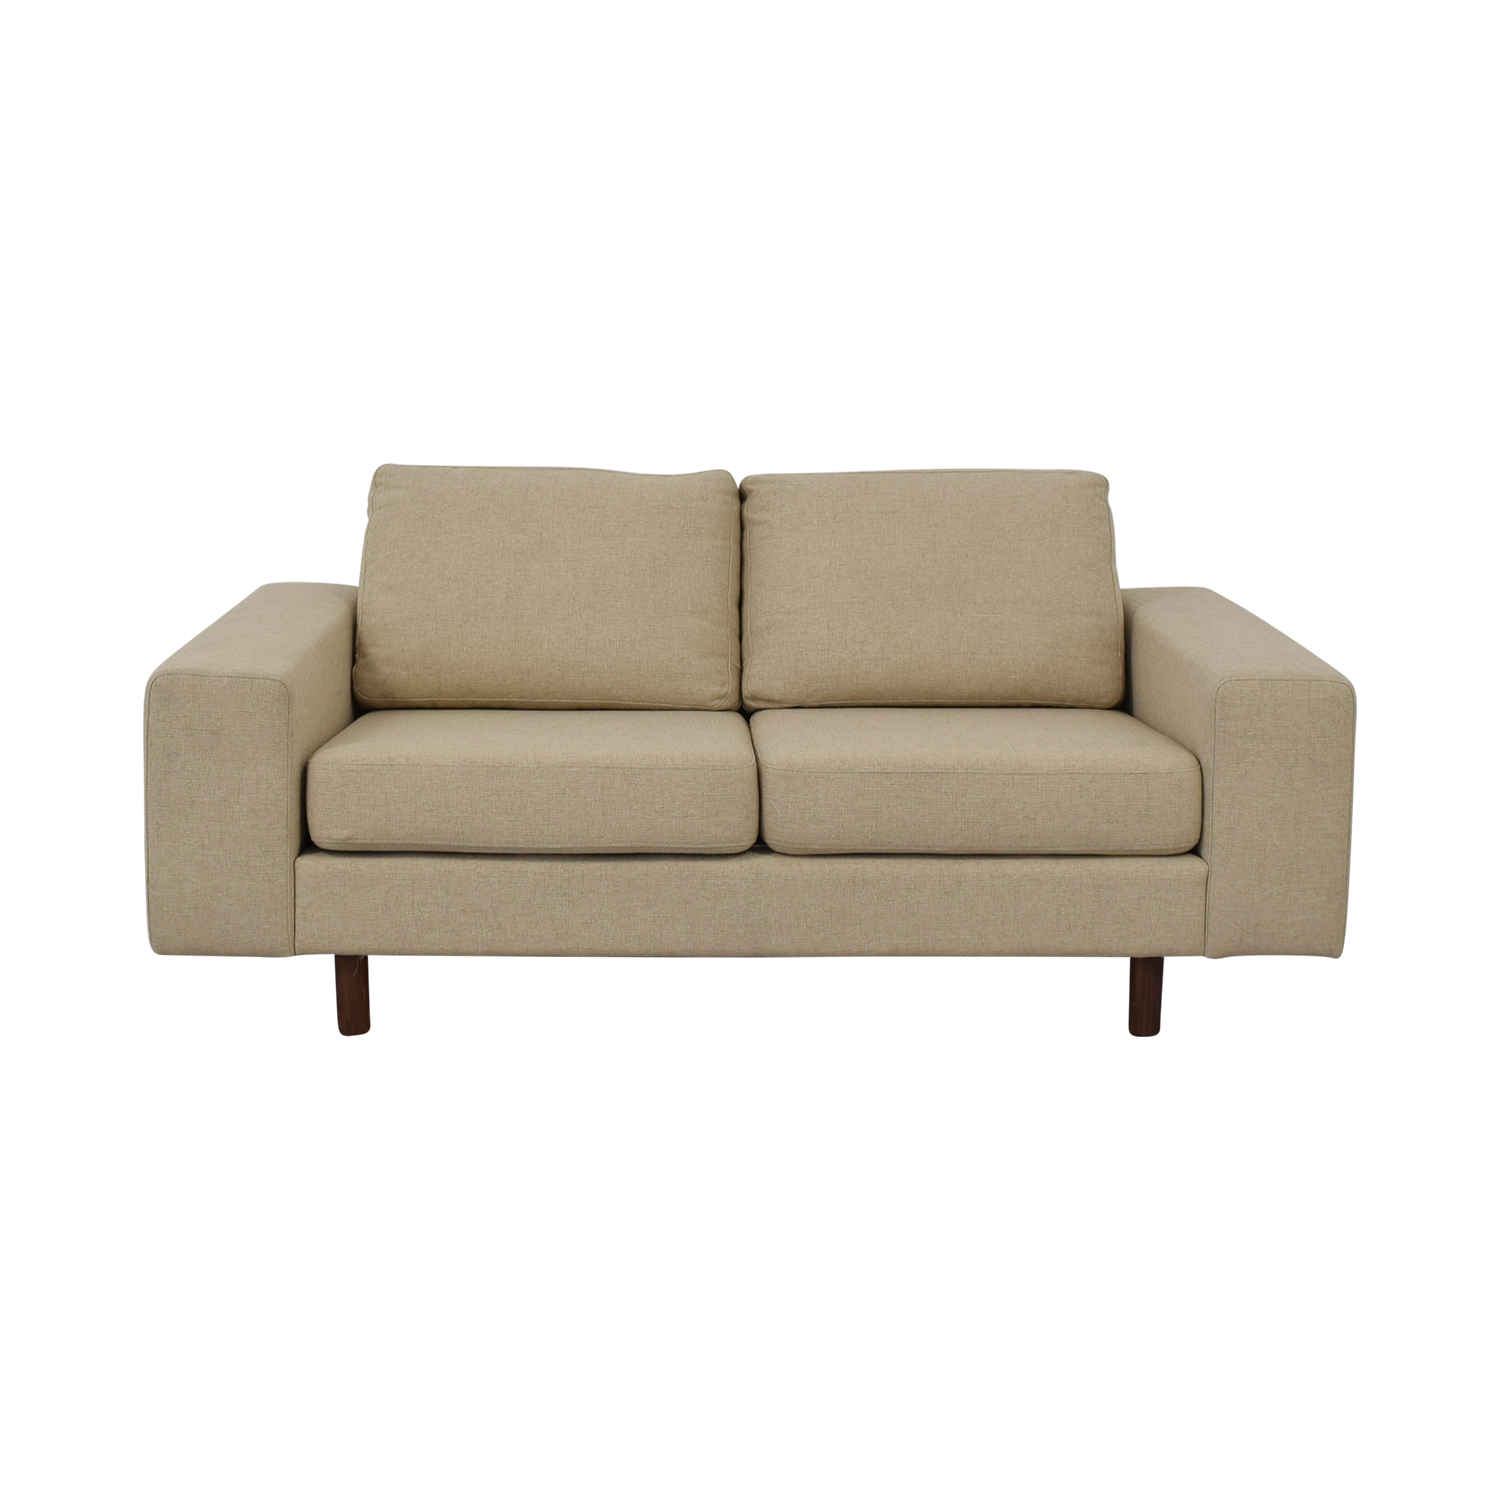 buy France and Son Platform Loveseat France and Son Sofas